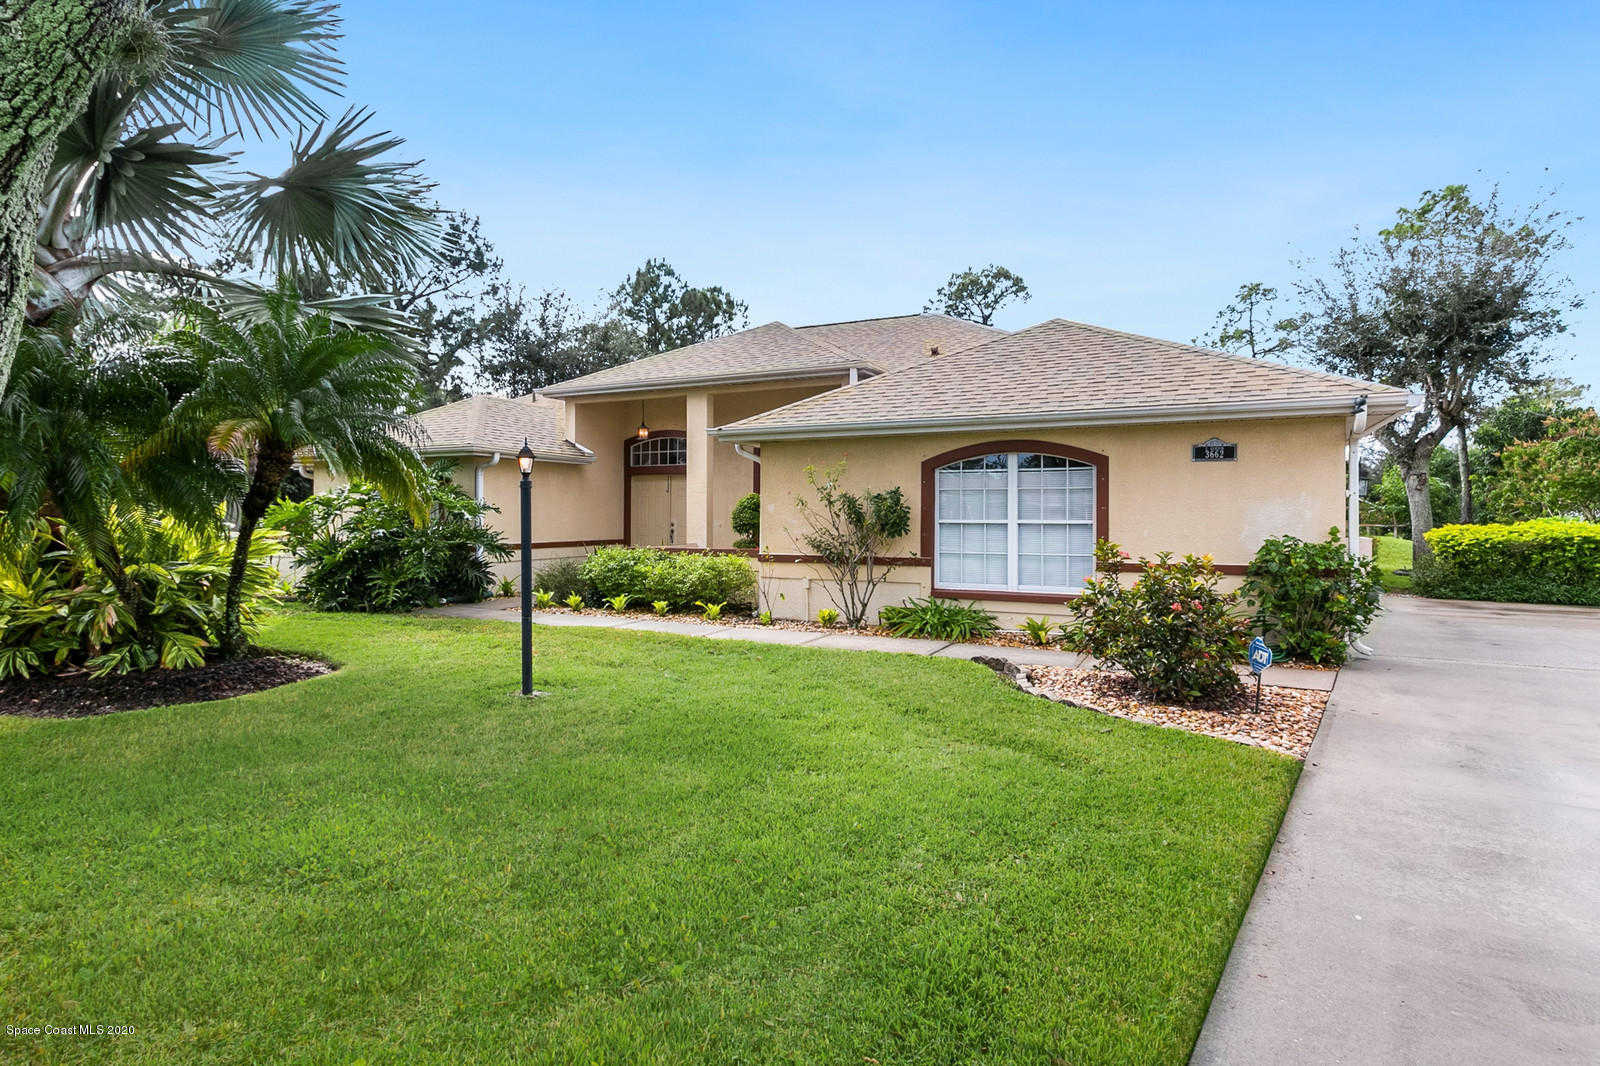 3662 Meadowlark Way, Melbourne, FL 32904 now has a new price of $419,000!